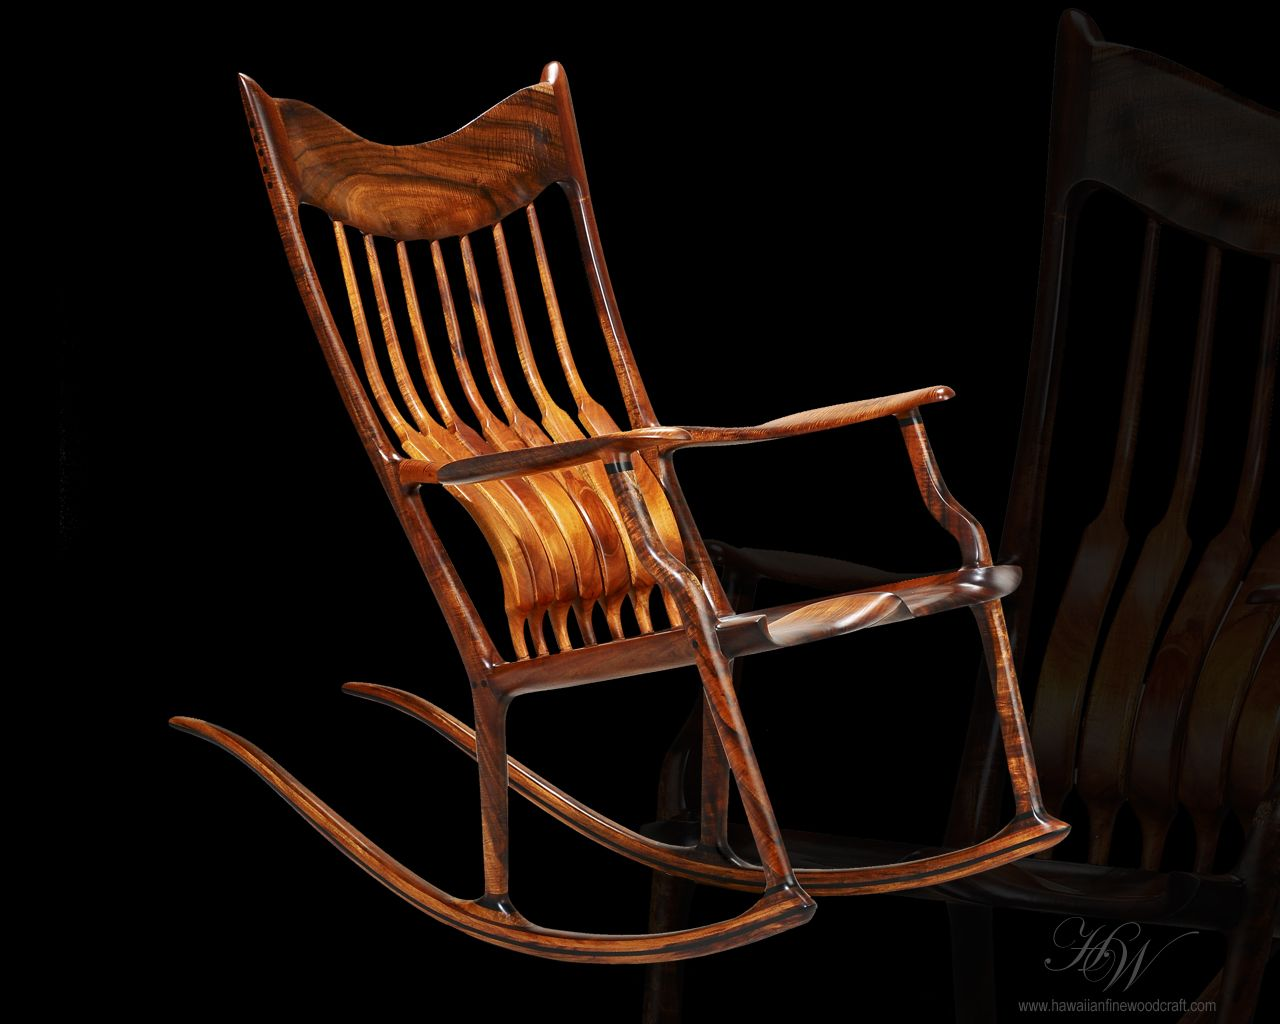 Rocking Chair Fine Woodworking Ergonomic Amazon Hawaiian Woodcraft Koa Rocker Hand Made